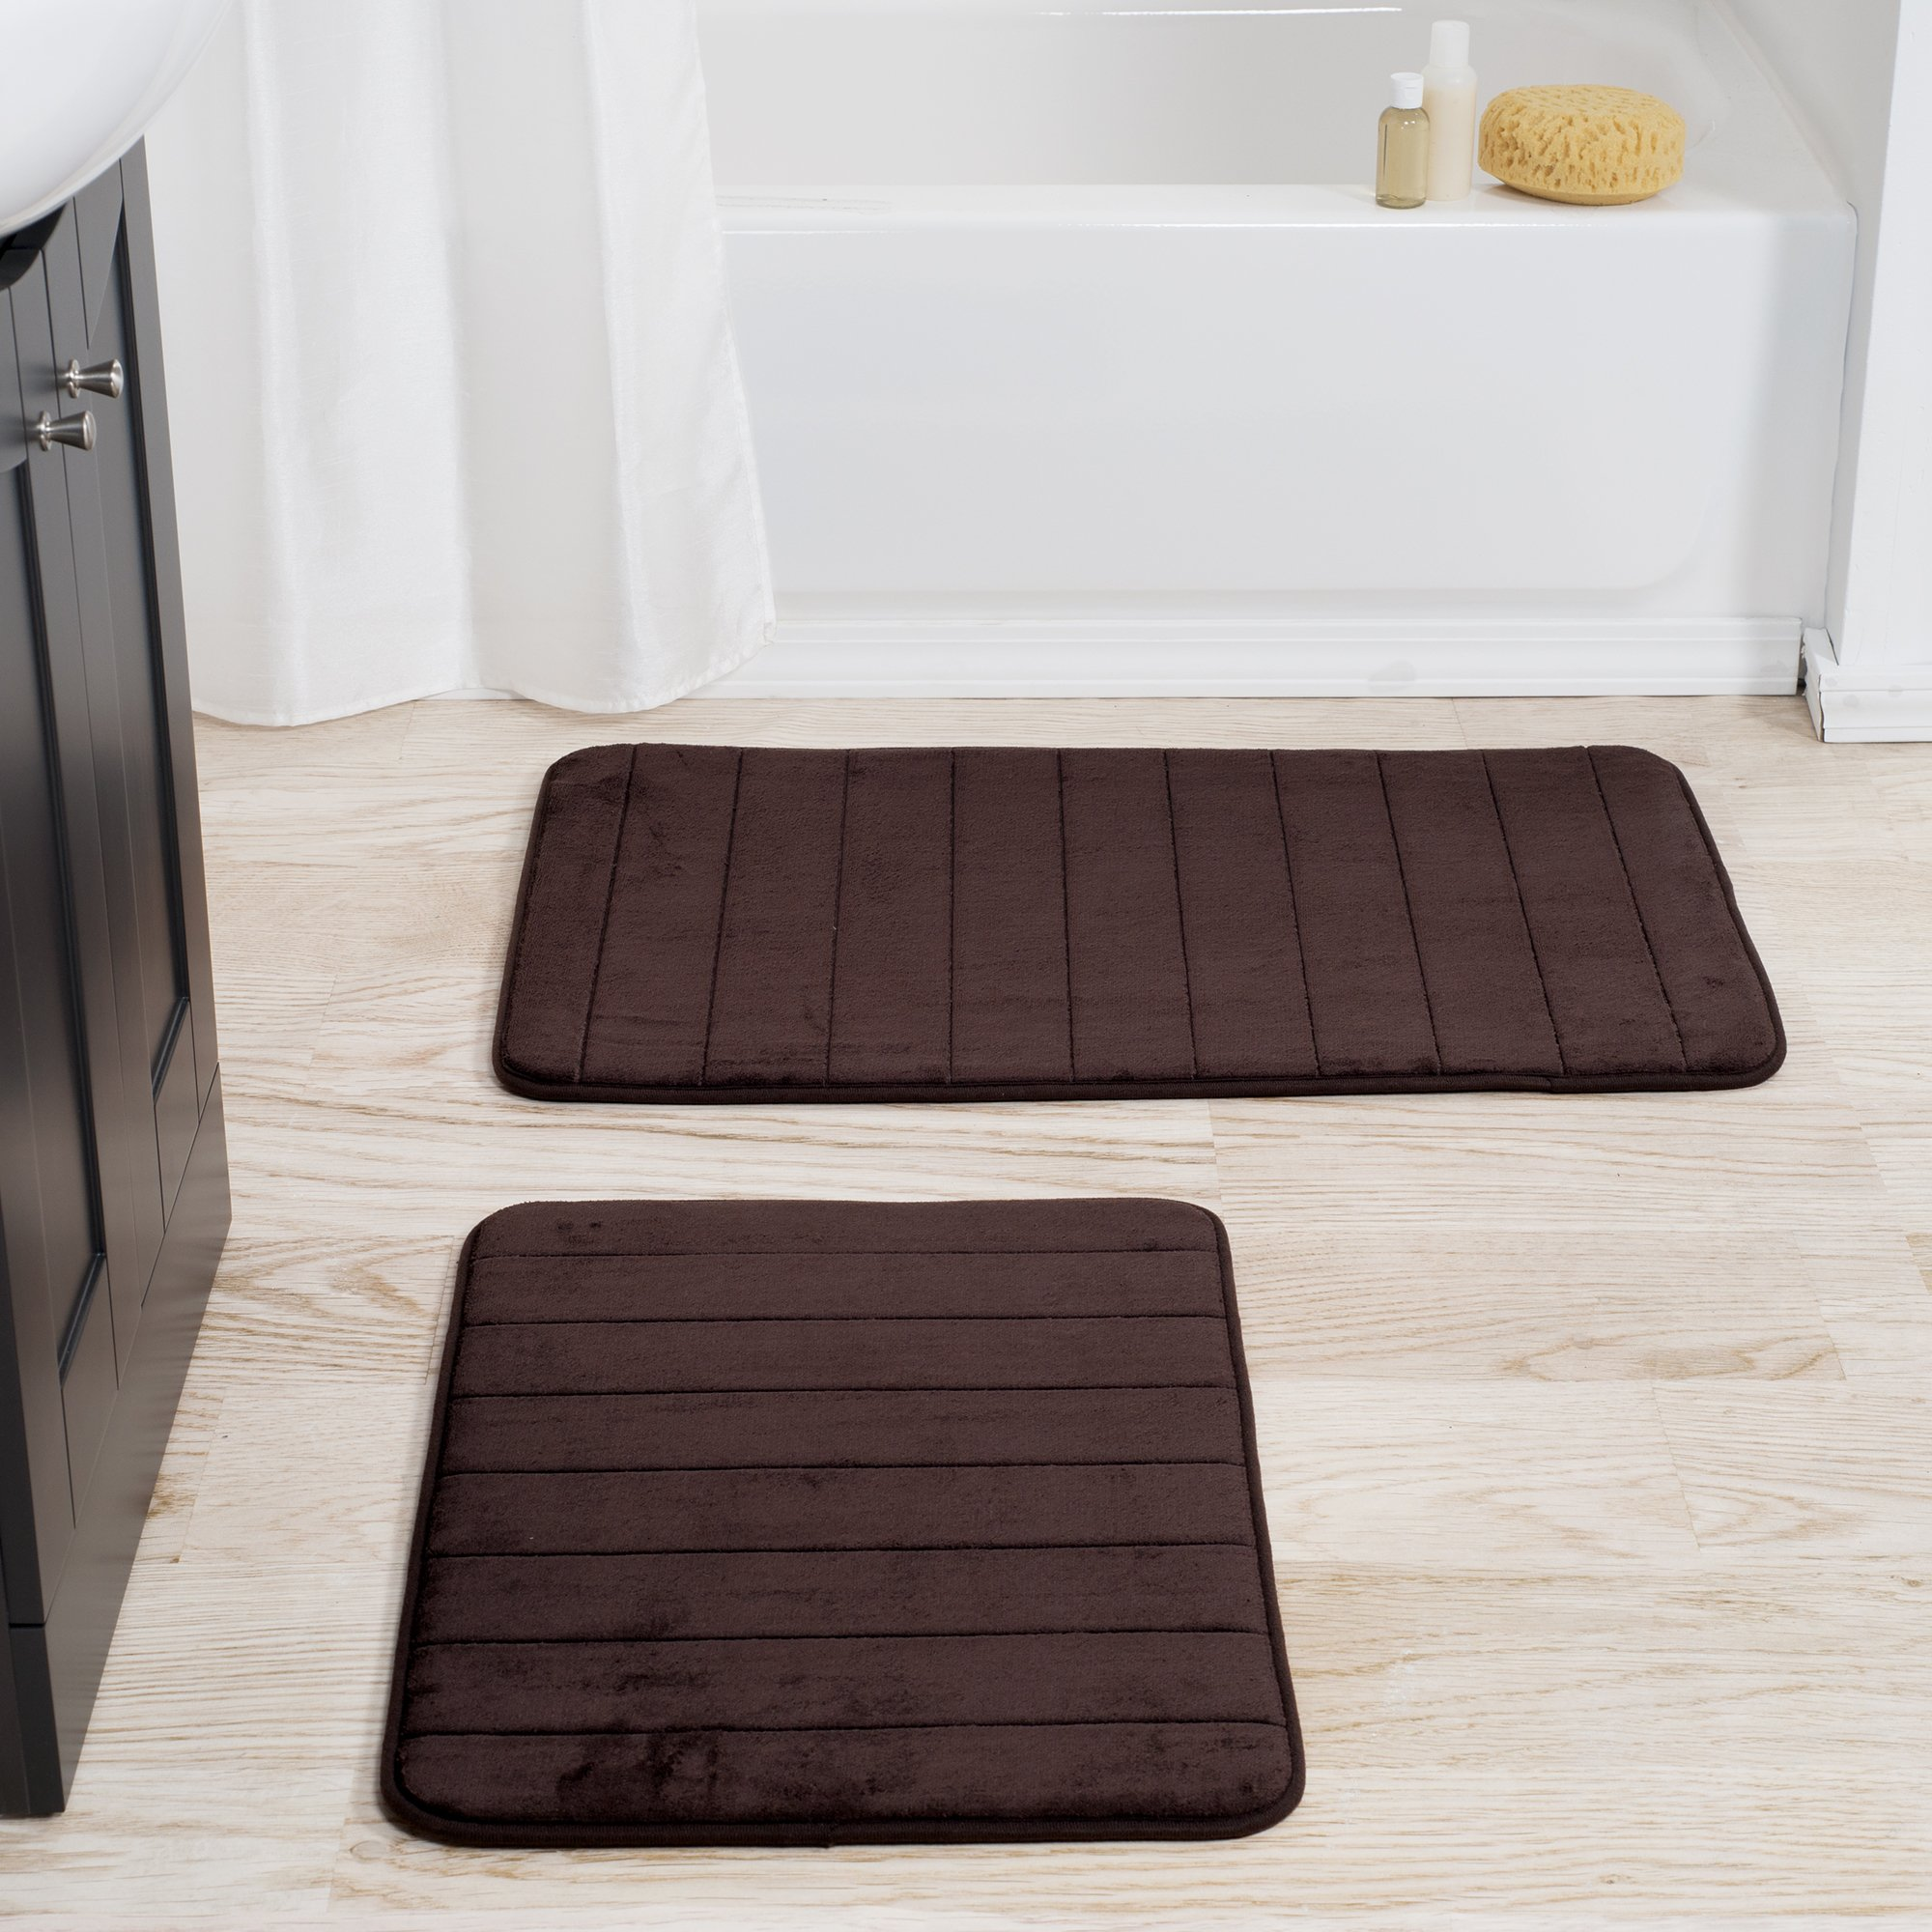 Lavish Home Set of 2 Microfiber Memory Foam Bath Mats - Plush Bathroom Rugs with Nonslip Back and Quick Drying Striped Pattern Top (Brown)